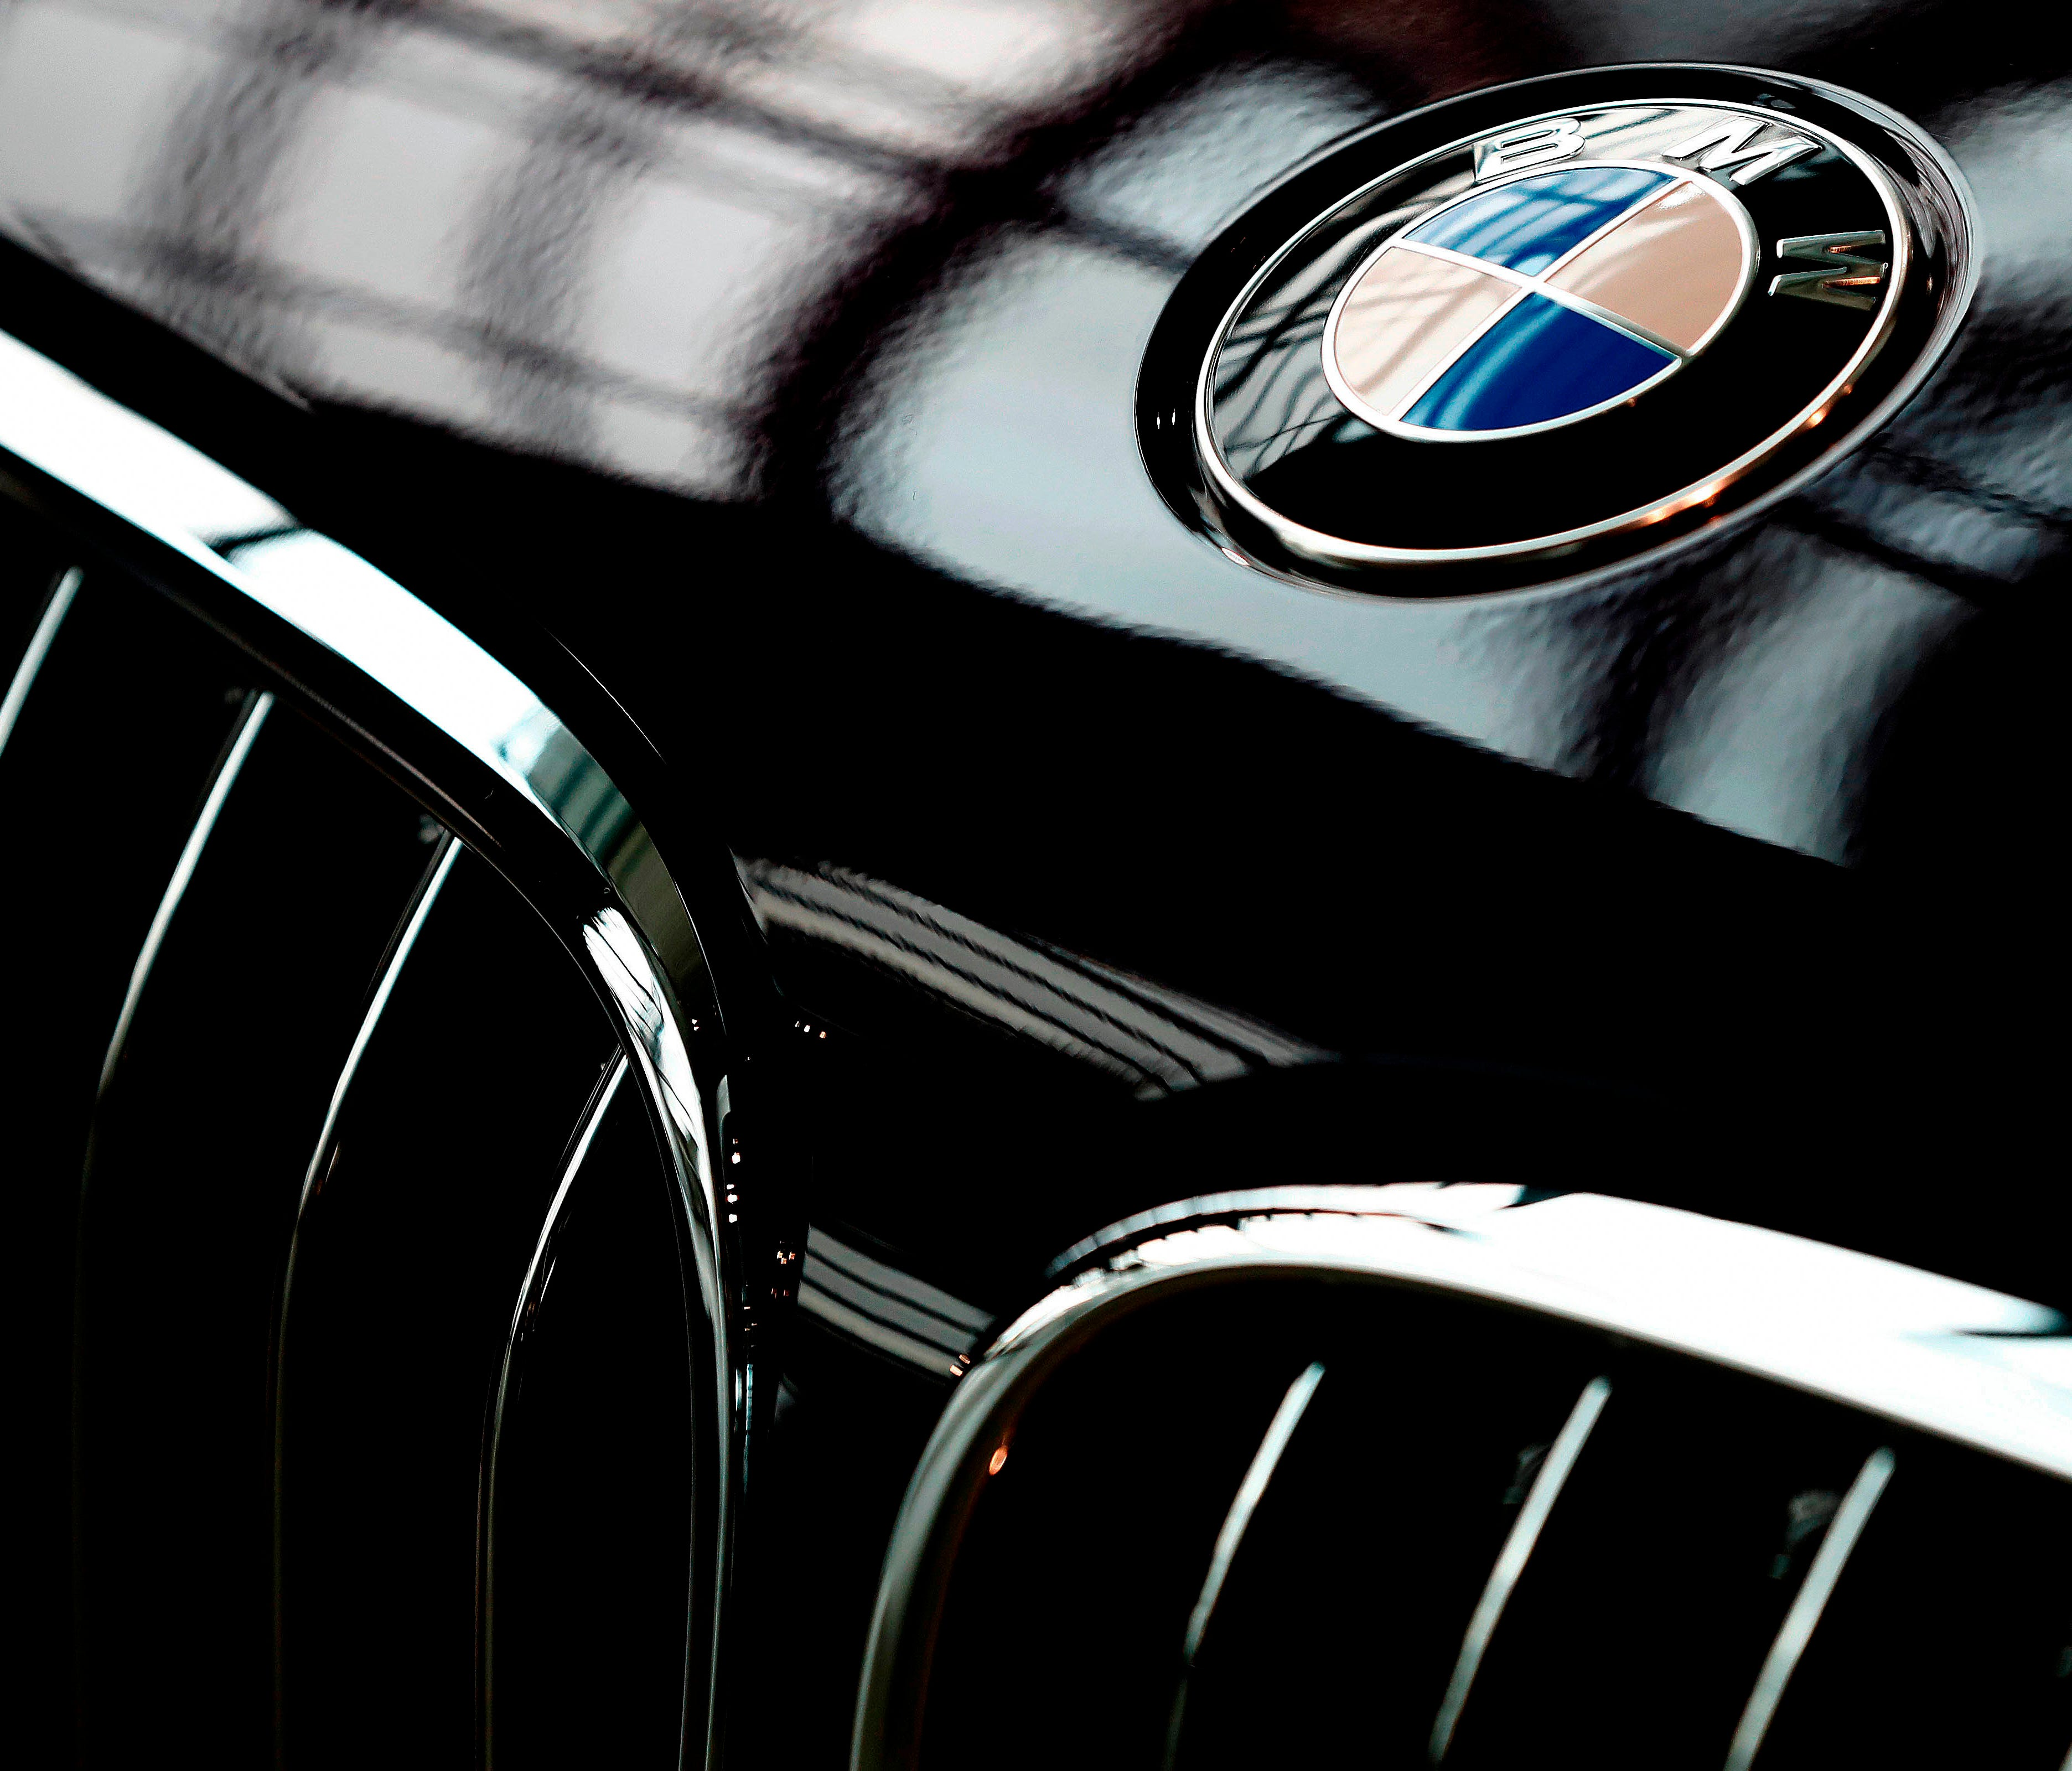 In this March 21, 2018, file photo, the logo of German car manufacturer BMW is pictured on a BMW 7 car prior to the earnings press conference in Munich, Germany.